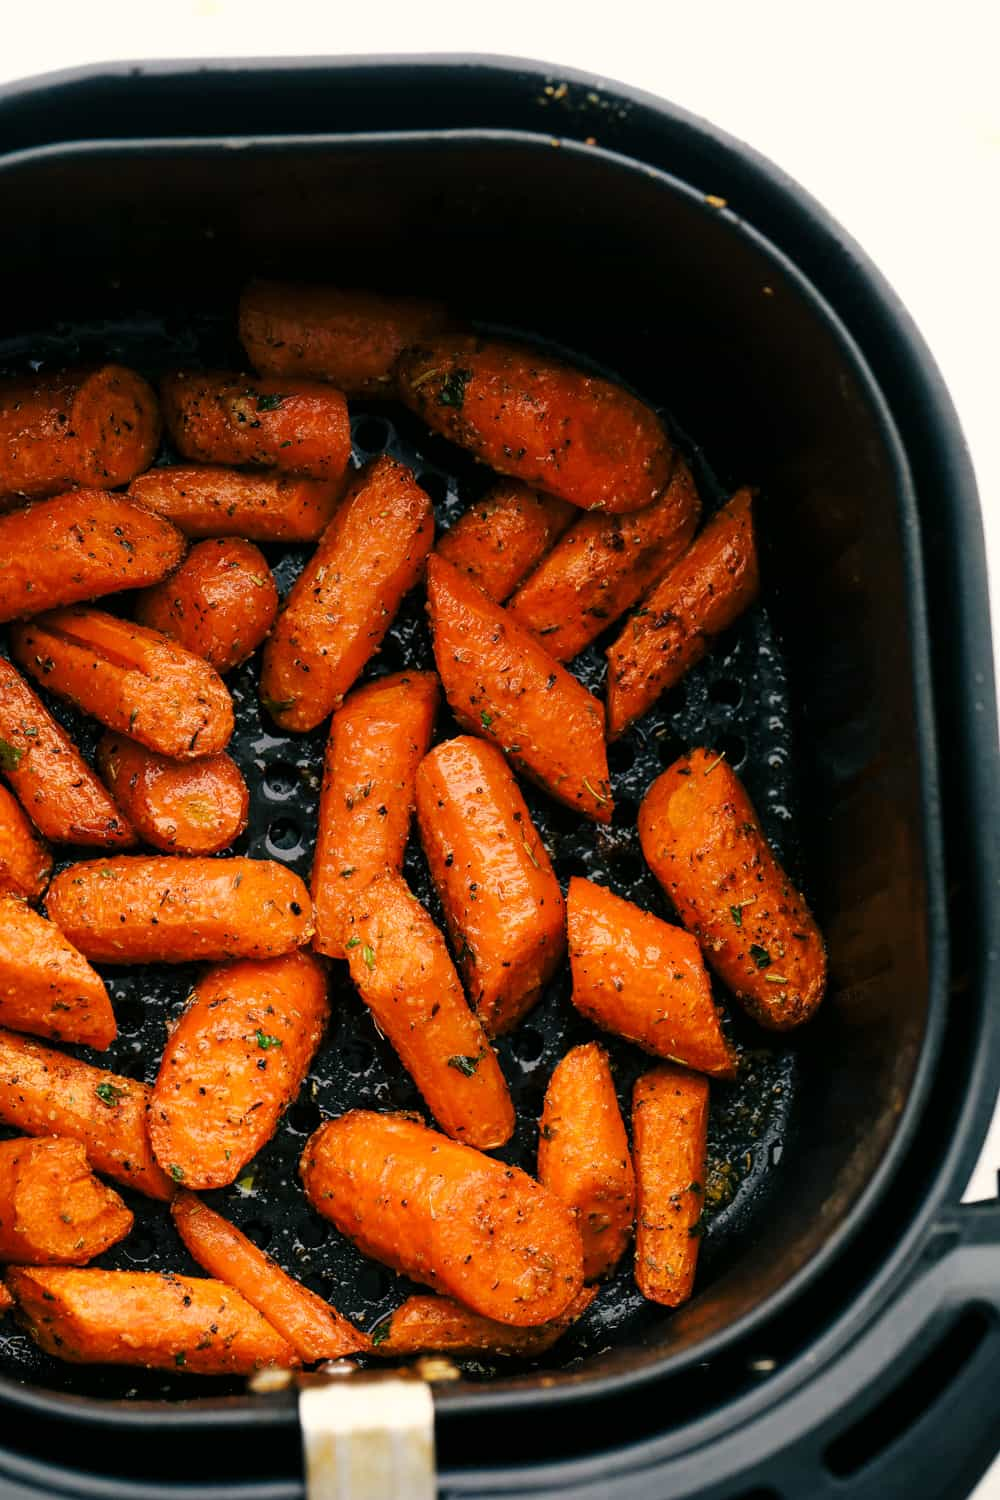 Air fryer carrots seasoned in air fryer basket.